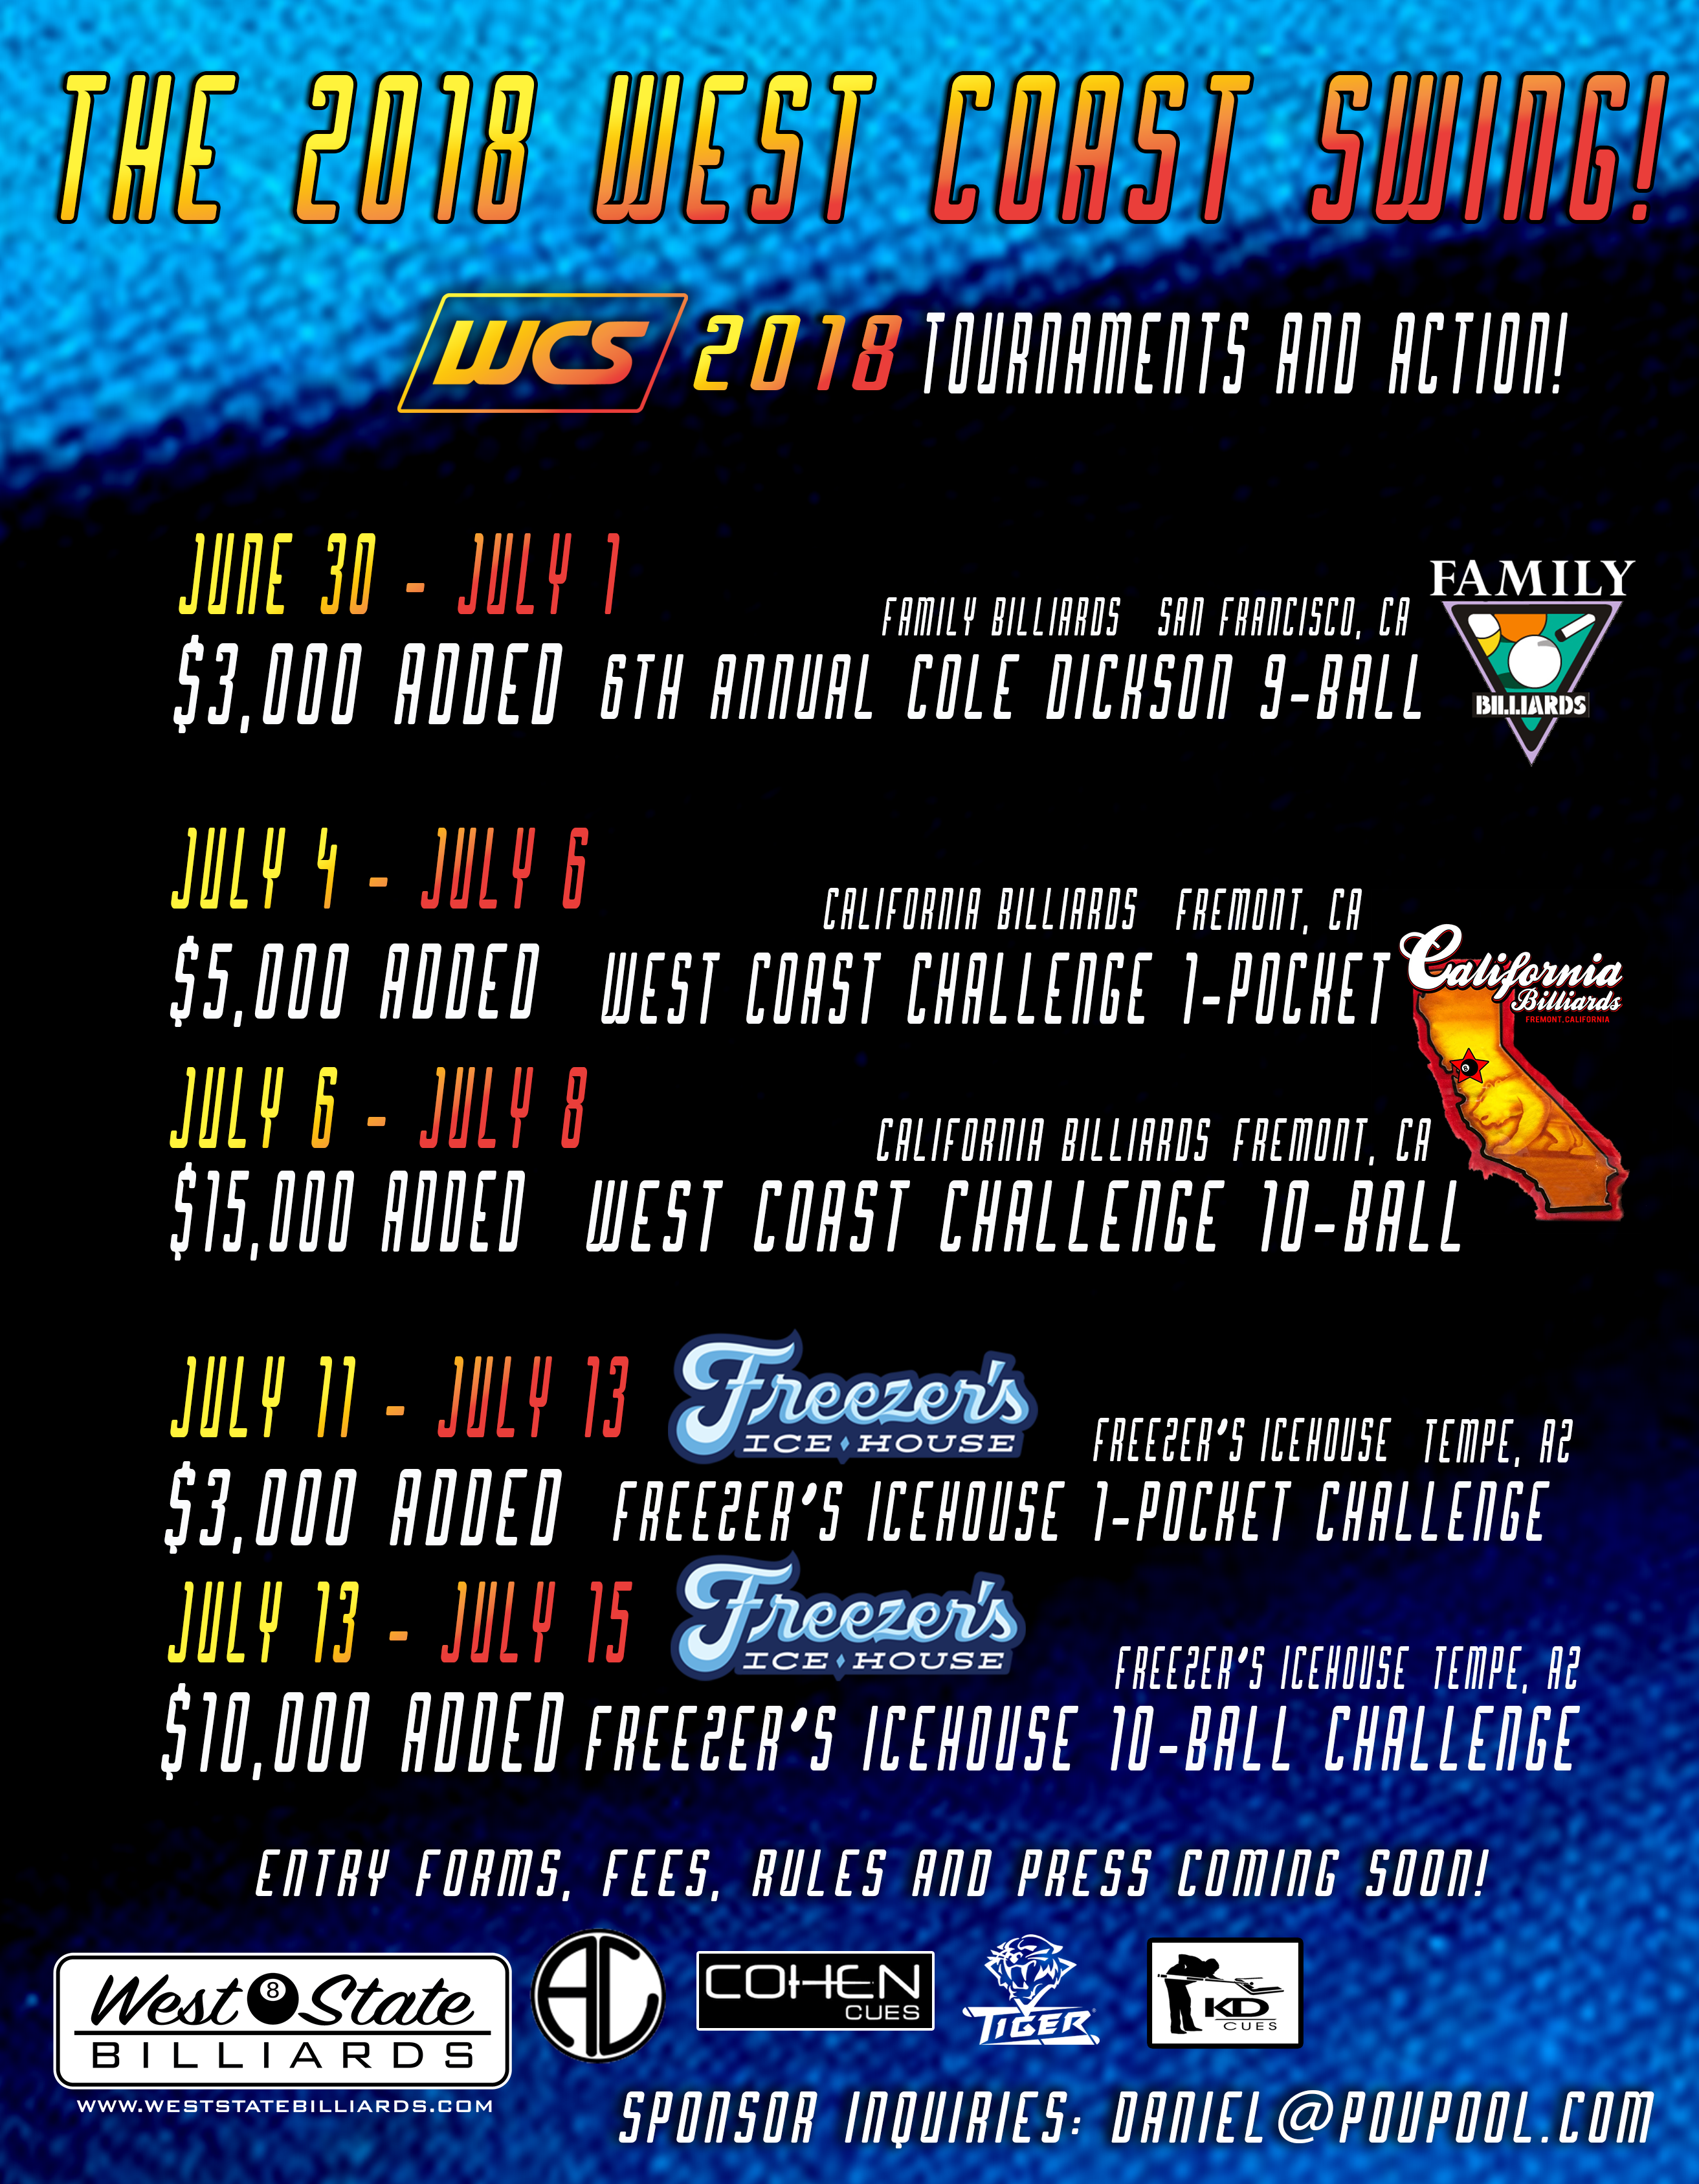 The 2018 West Coast Swing Of Pool Tournaments And Action: Dates And Venues!